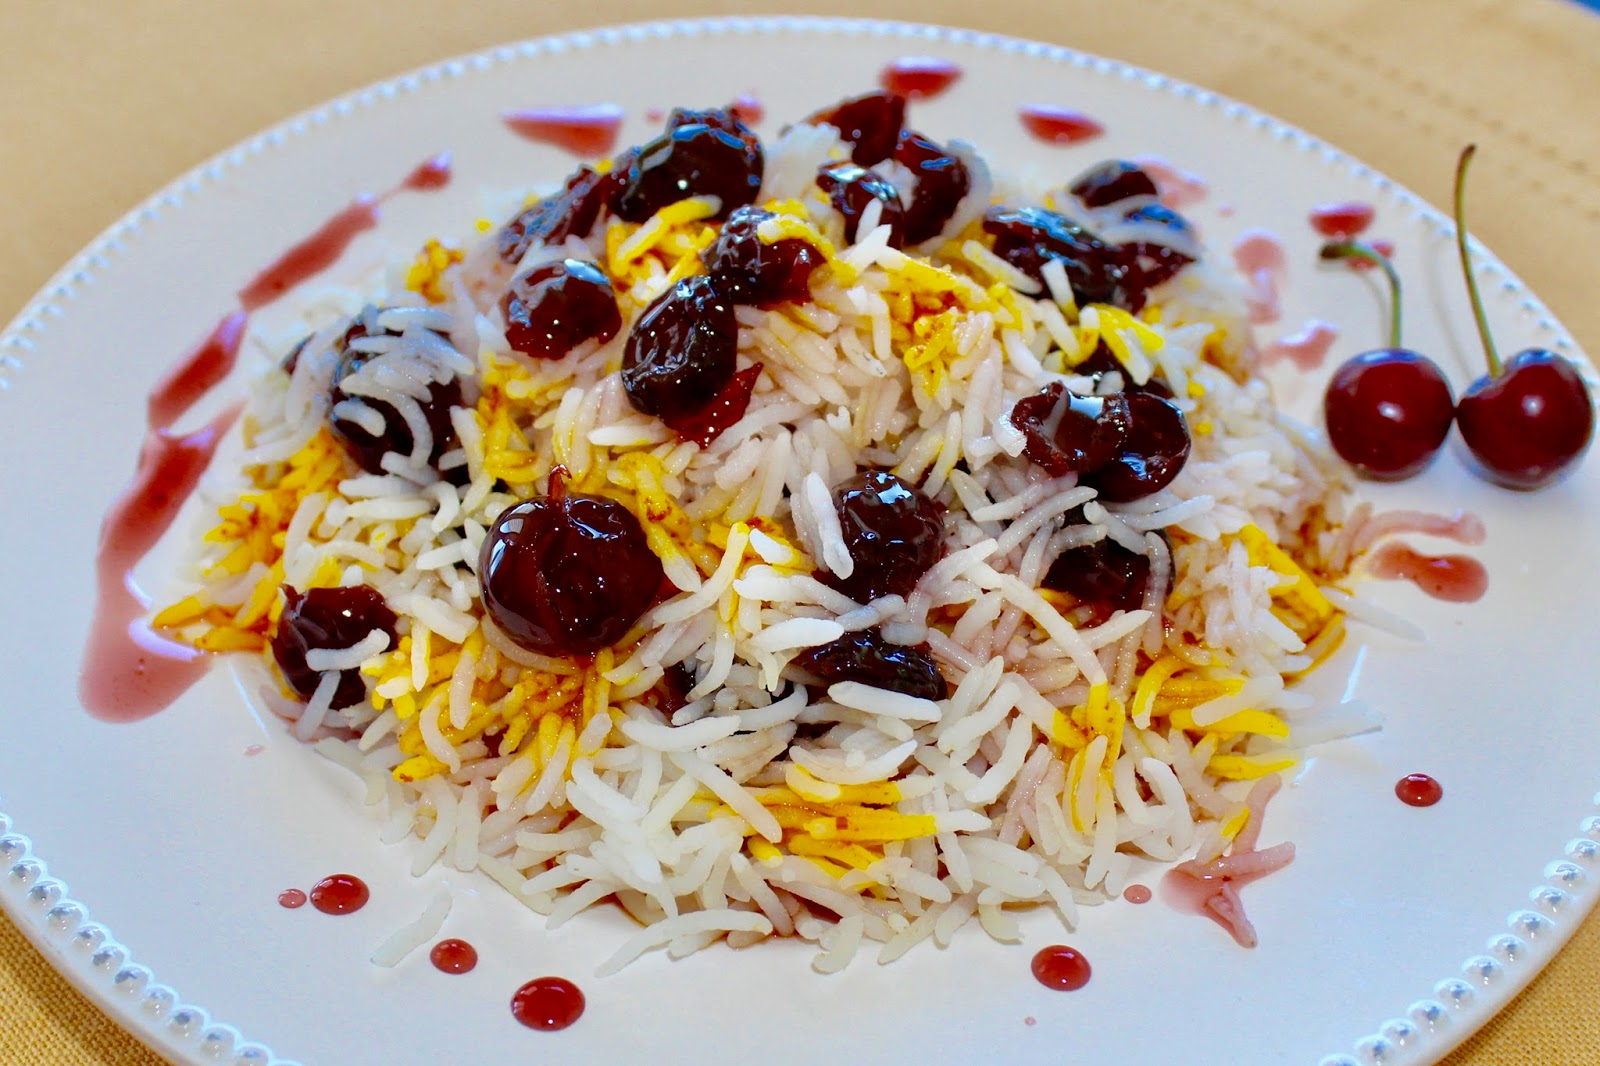 Albaloo Polo- Sour Cherry Persian Rice for New Years